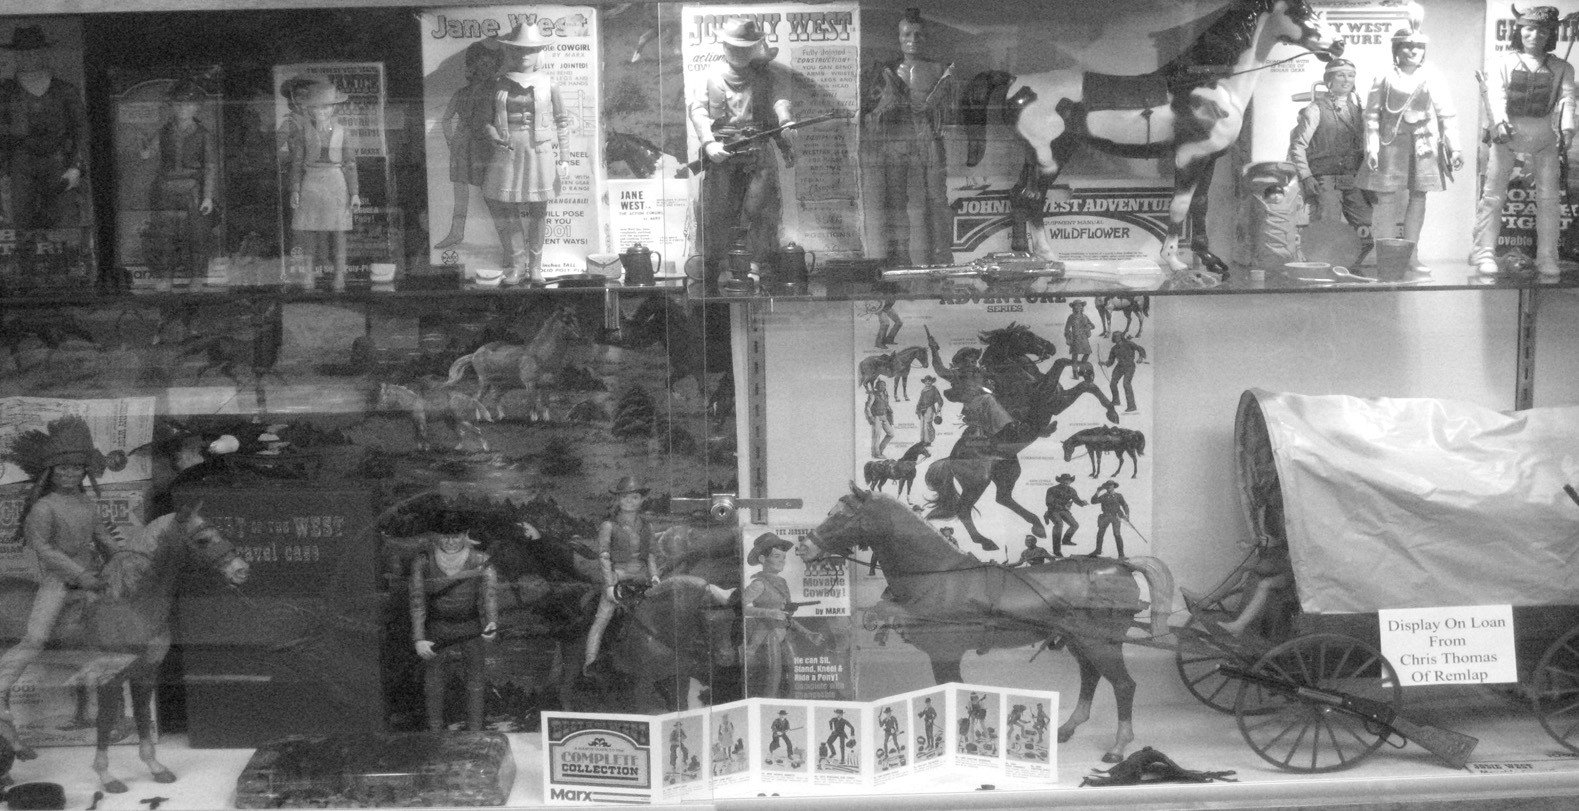 Currently on display at Memorial Museum in Oneonta is the 'Best of the West' display, a collection of figures of near-mythical status from the Western frontier. Produced by Louis Marx and Company, the collection took its inspiration from both actual historical figures like Daniel Boone and Geronimo and television characters from the 1950s and 1960s, the company's heyday. When licensing costs became too great to feature TV and movie personalities, the company introduced its own generic line of figures, such as Johnny West (John Wayne?) and Jane West. The display is on loan from Chris Thomas of Remlap. – Ron Gholson